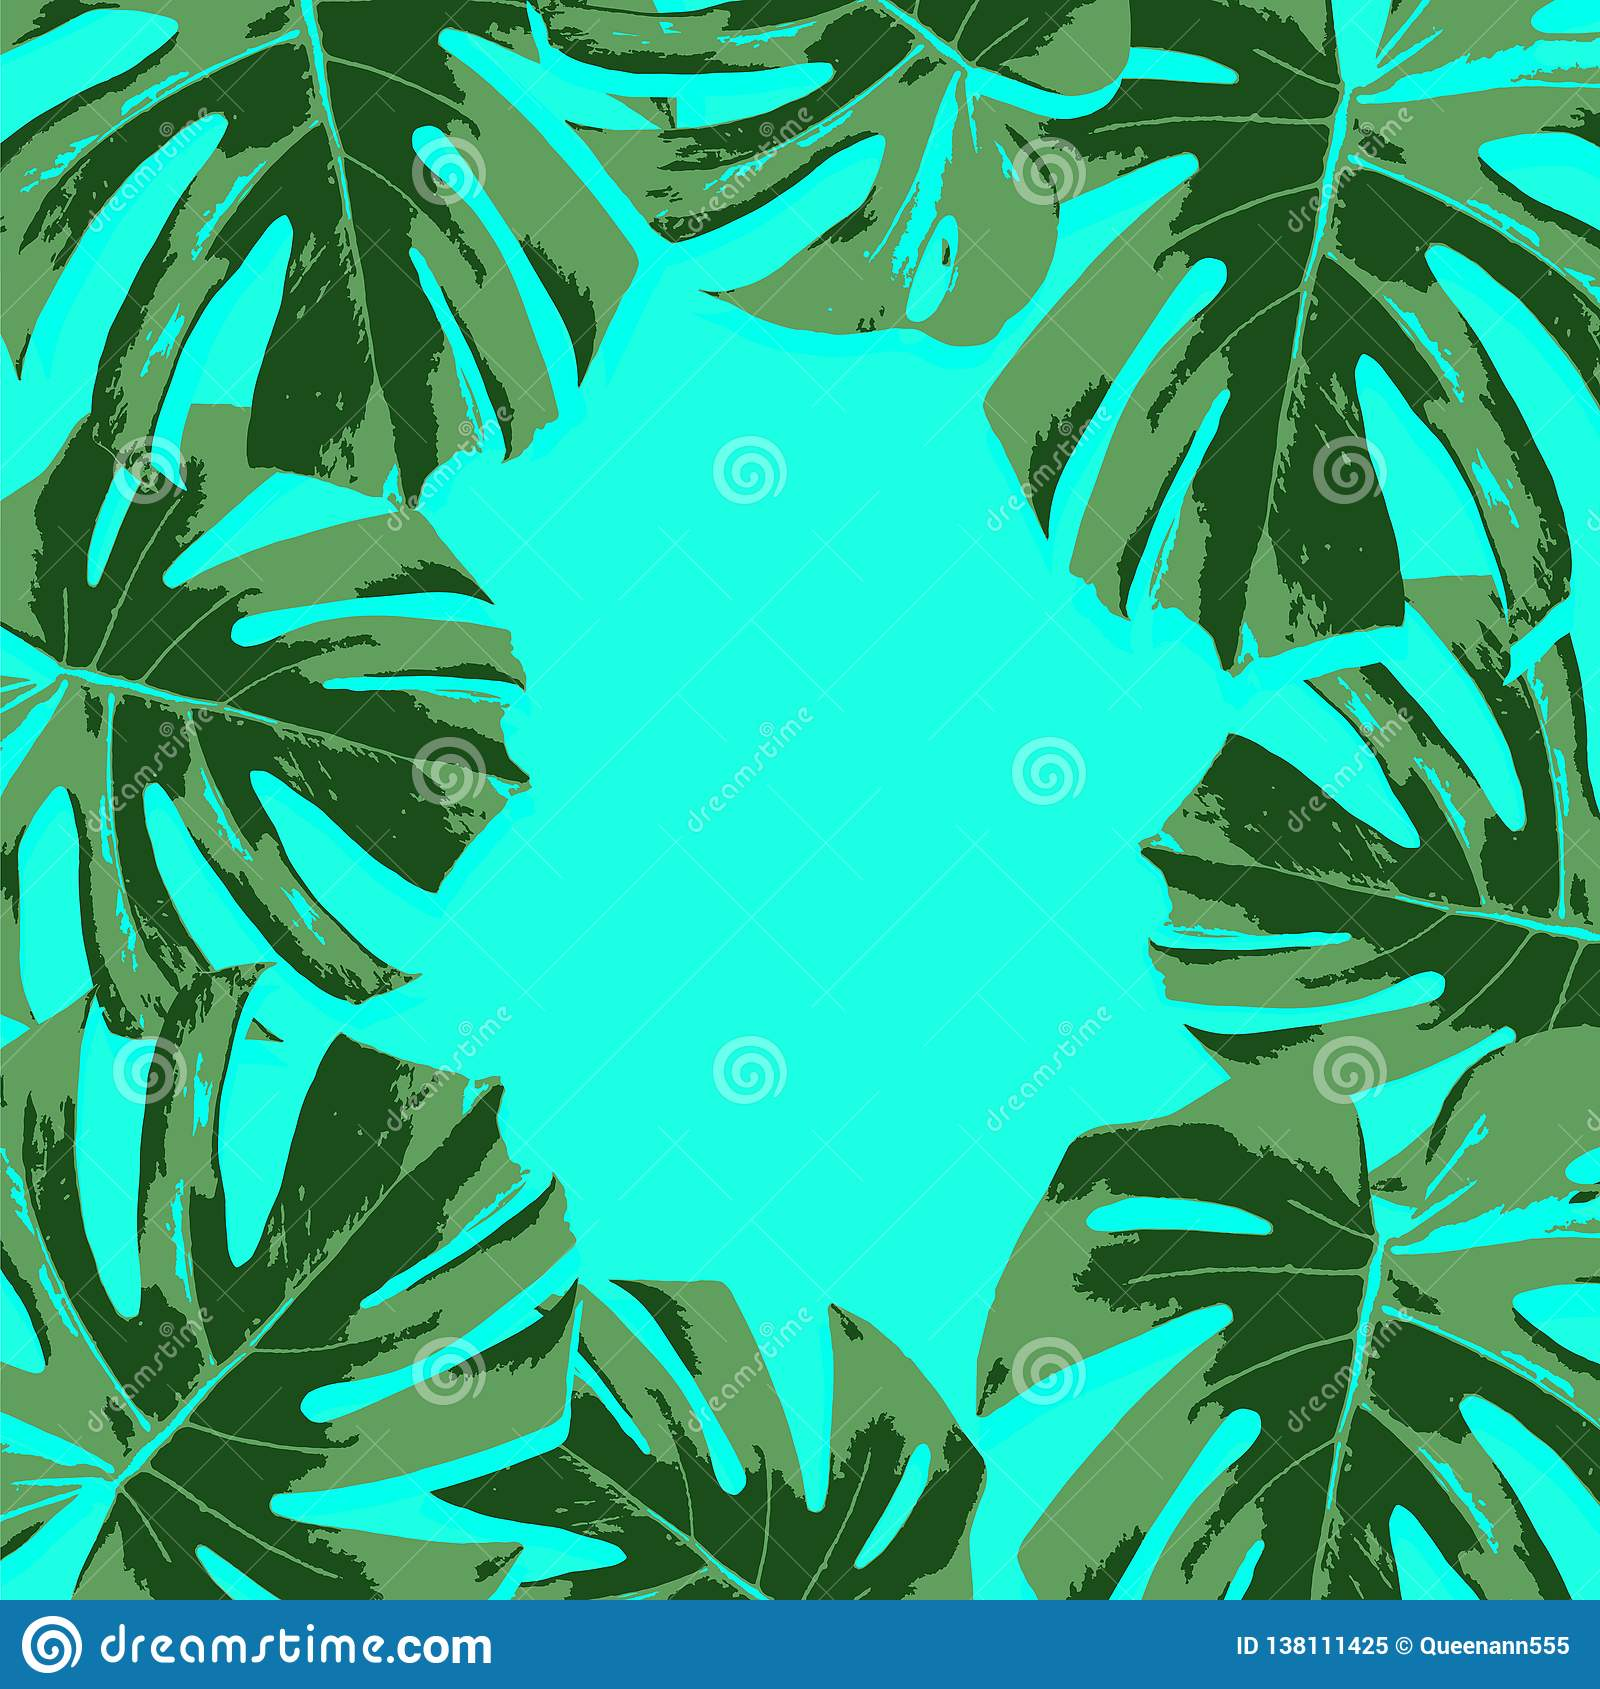 Vector Tropical Green Palm Leaves On Turquoise Background Stock Illustration Illustration Of Hawaii Background 138111425 We hope you enjoy our growing collection of hd images to use as a background or home screen for your please contact us if you want to publish a tropical leaves wallpaper on our site. https www dreamstime com vector tropical green palm leaves turquoise background vector tropical green leaves turquoise background image138111425